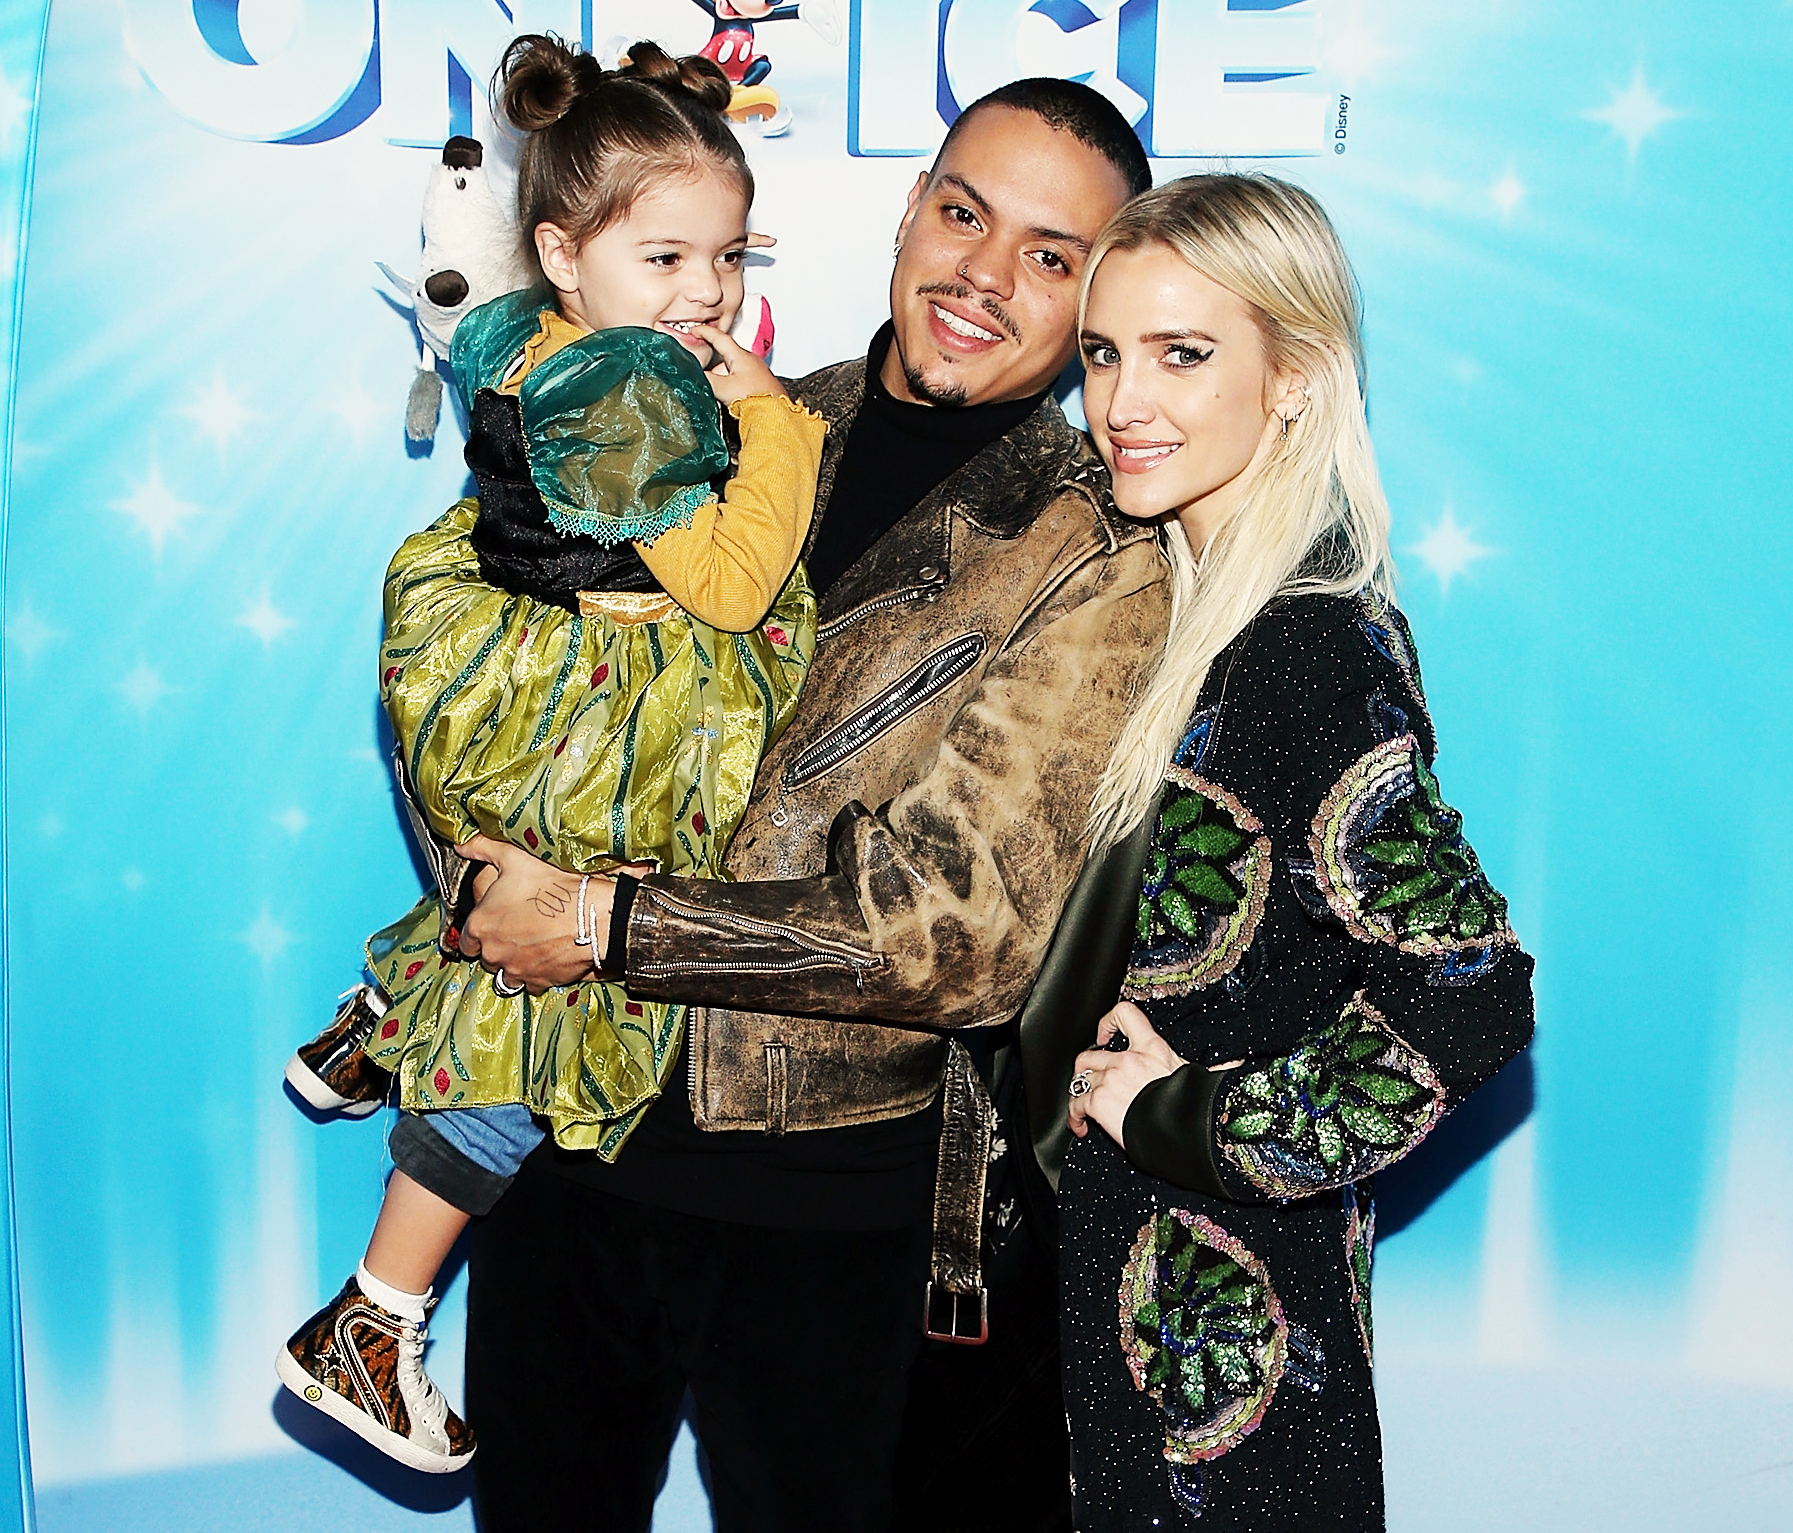 Ashlee Simpson Evan Ross Great Relationship Pete Wentz - Evan Ross, Ashlee Simpson and their daughter, Jagger Snow Ross, attend Disney On Ice Presents 'Dare To Dream' at Staples Center on December 14, 2018 in Los Angeles, California.